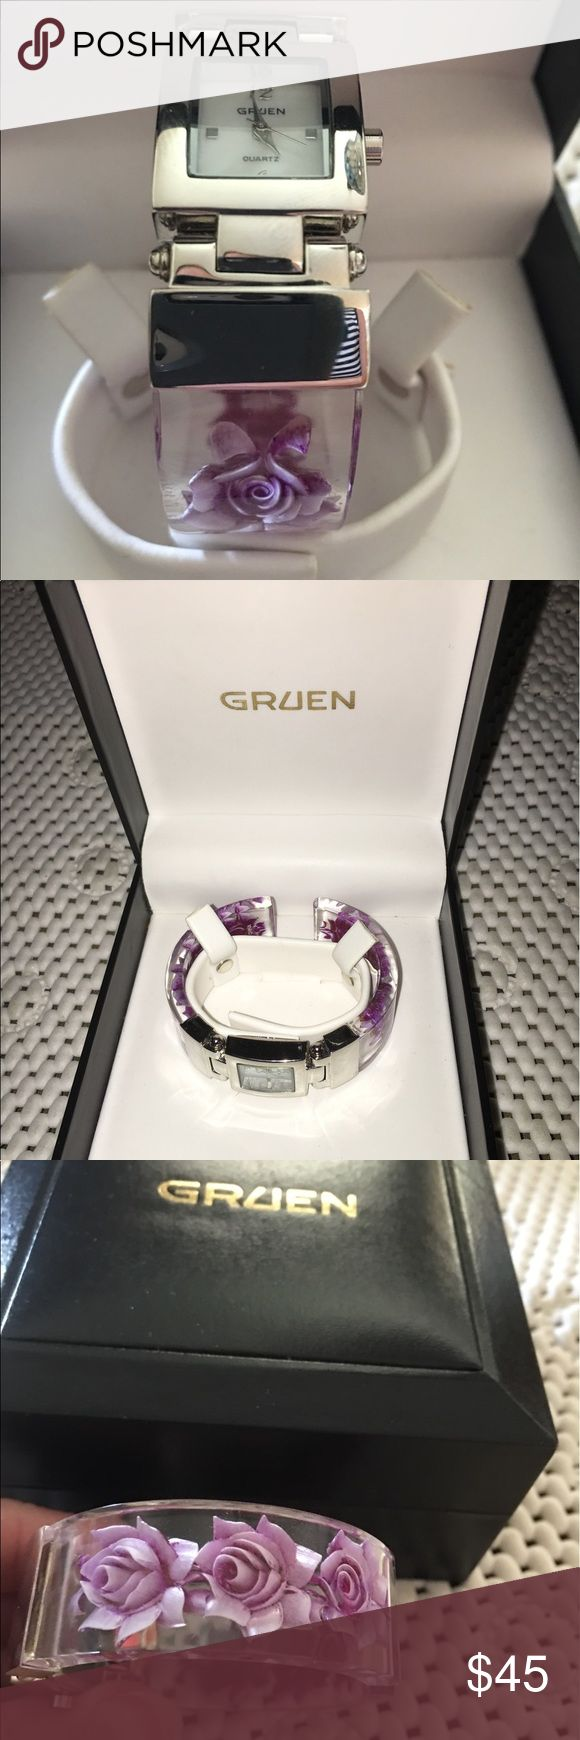 Ladies Gruen Watch Bangle Purple Flowers in Box Beautiful Gruen watch comes in original box. Bangle style bracelet full of purple flowers springs open to fit almost any size wrist. Fresh battery installed and an extra battery included. Excellent condition, rarely worn. Gruen Accessories Watches